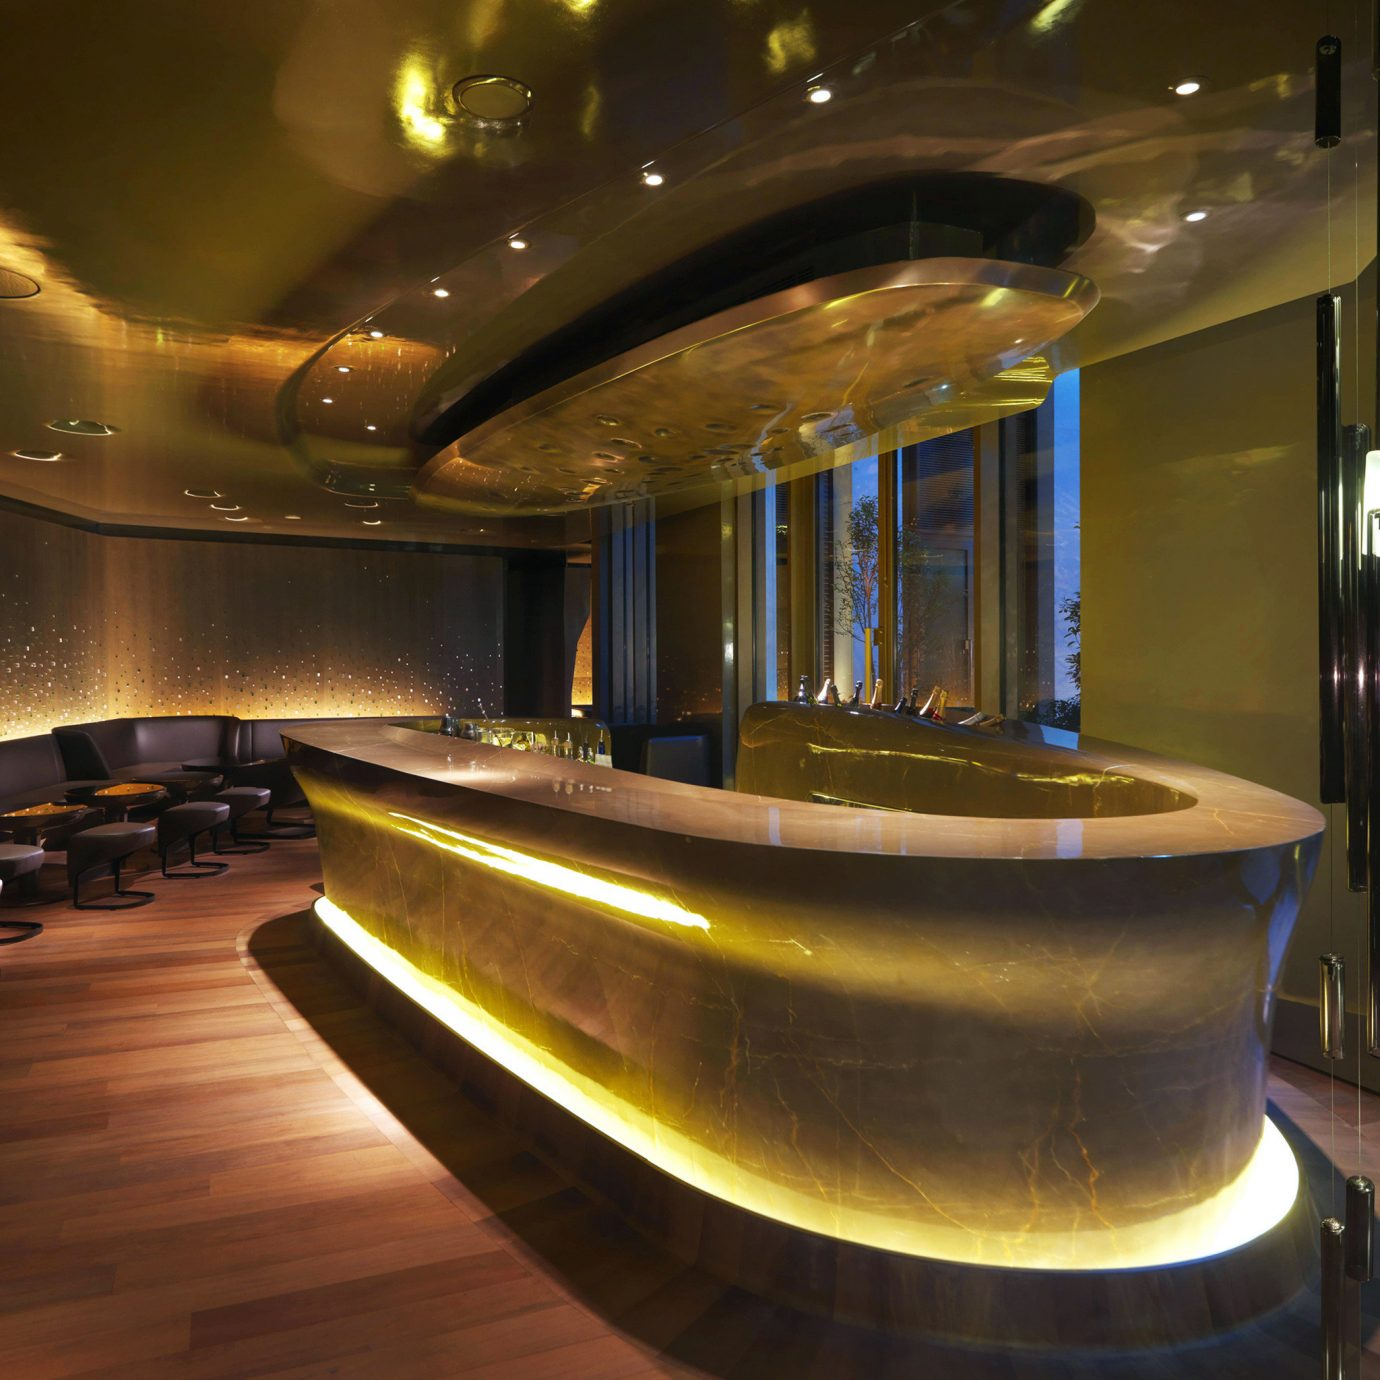 Bar City Drink Eat Hip Luxury Modern Nightlife Lobby lighting restaurant auditorium